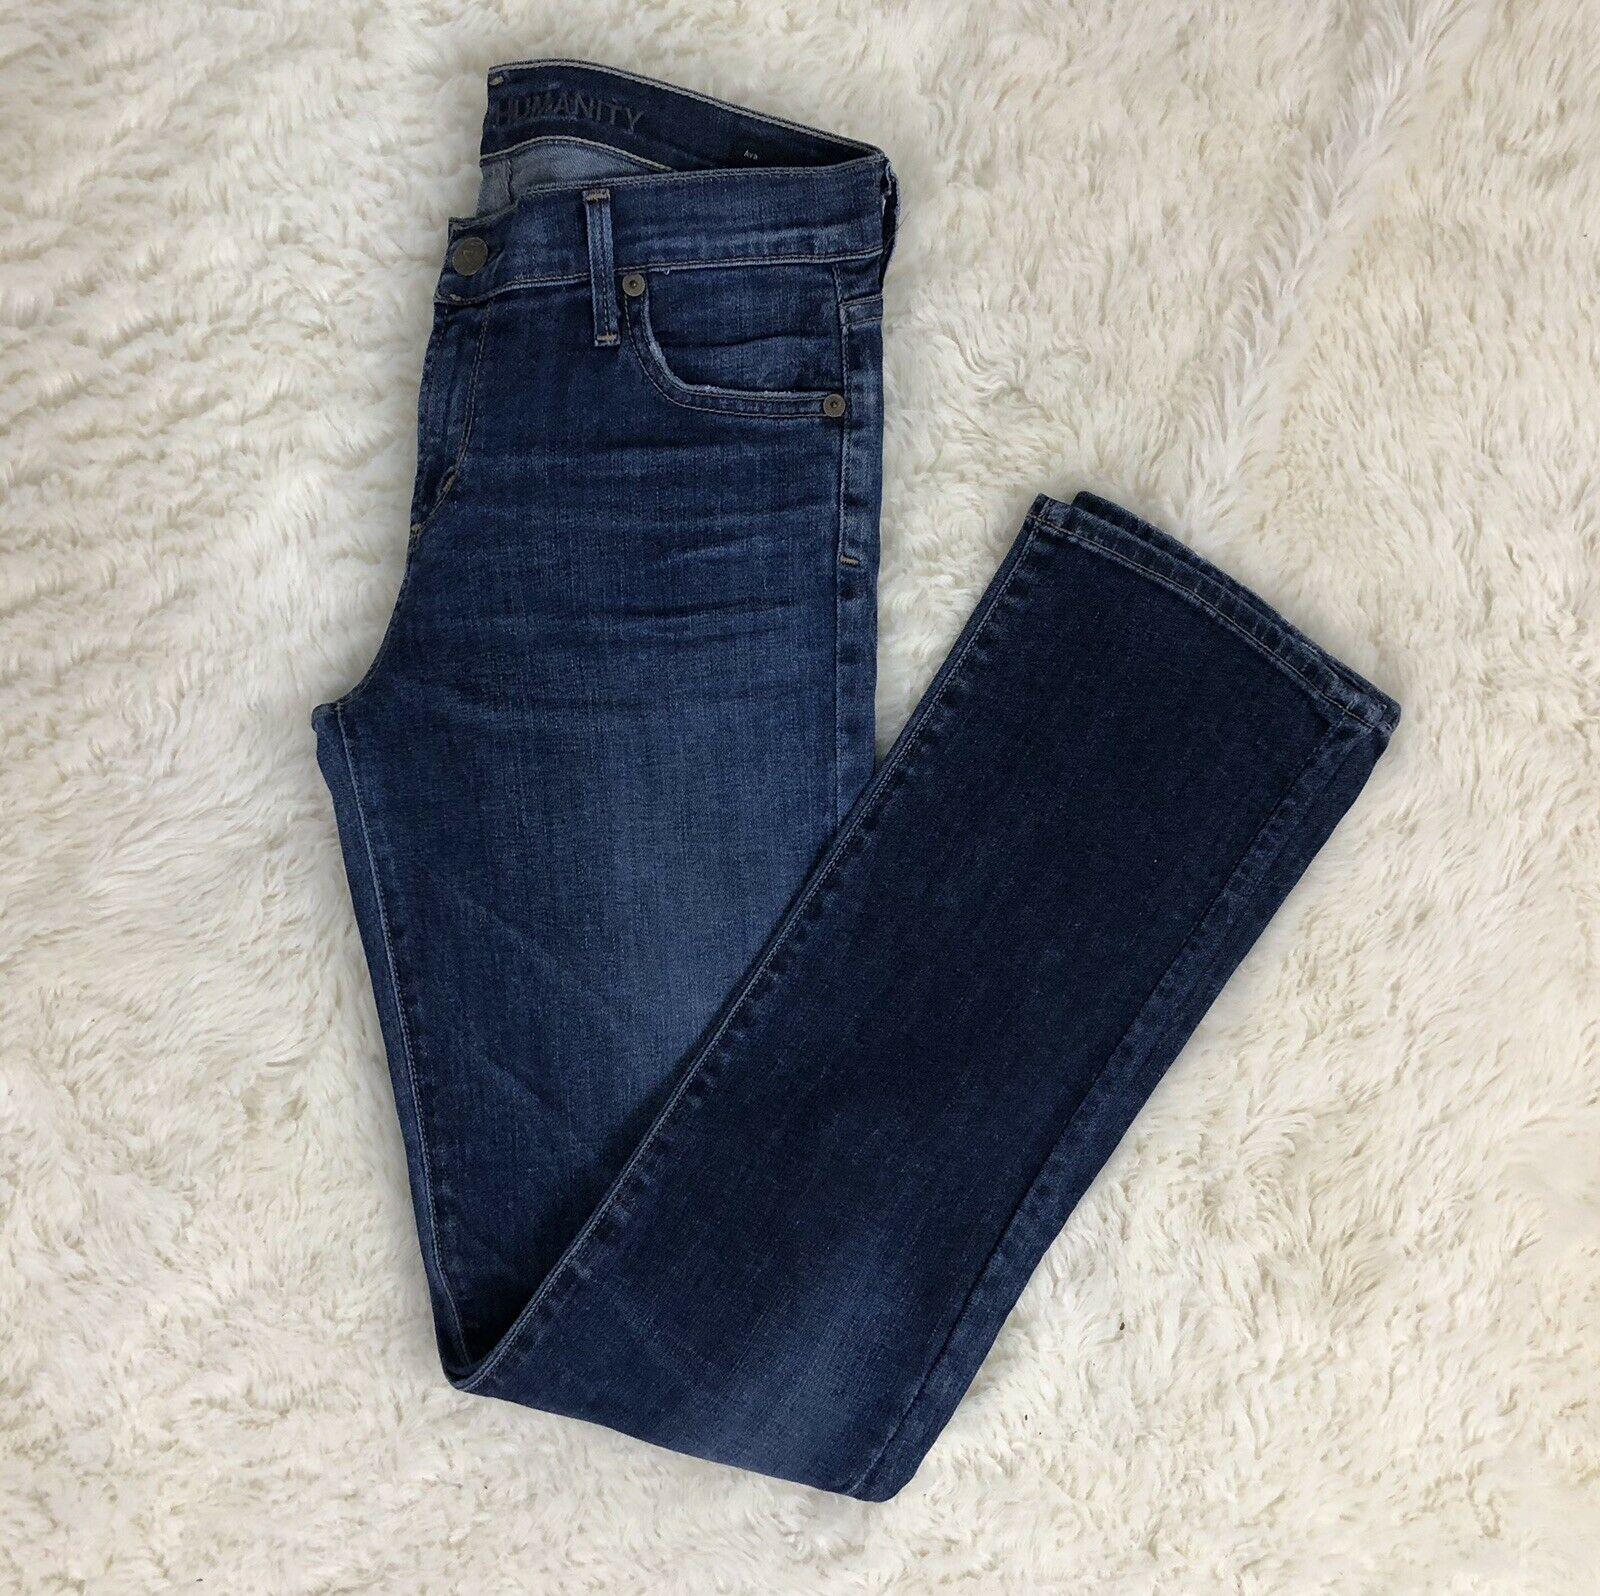 Citizens of Humanity Women's Jeans Ava Straight Leg Size 28 Low Rise